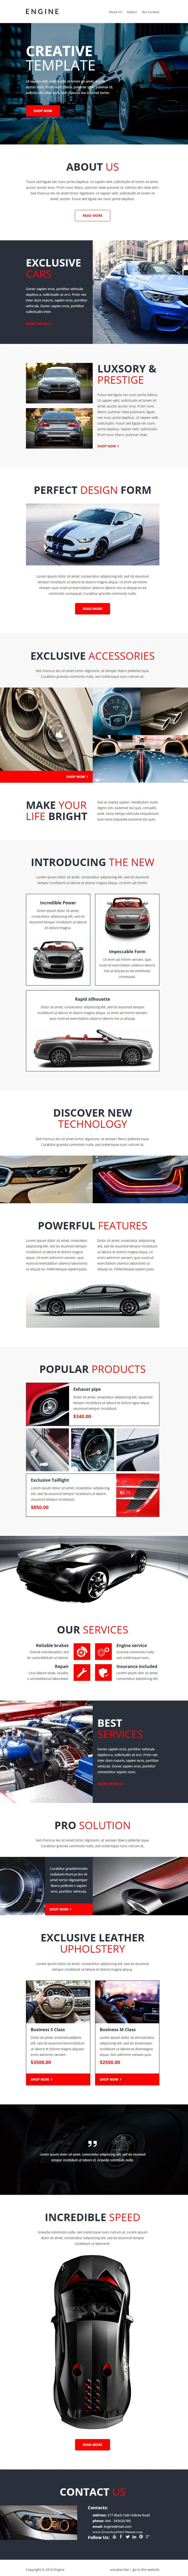 Engine Stunning Multipurpose Email Template + Online Email builder 2.1 with 25 Modules #Automobile #viral #marketing